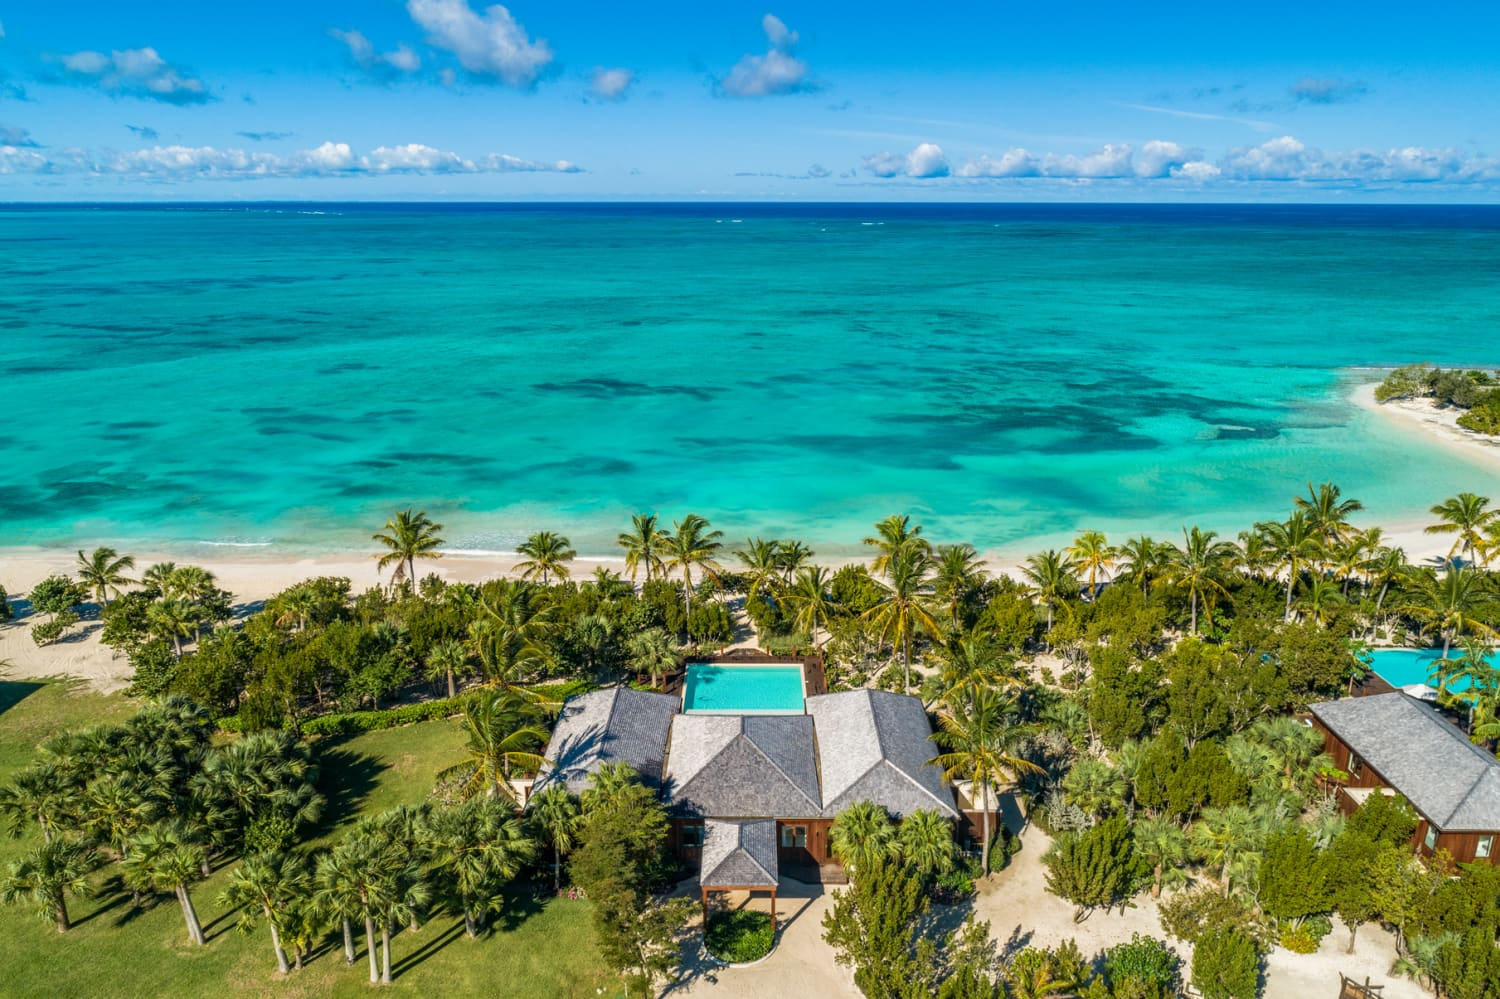 Bruce Willis' Turks & Caicos Estate Where He Got Married Is For Sale